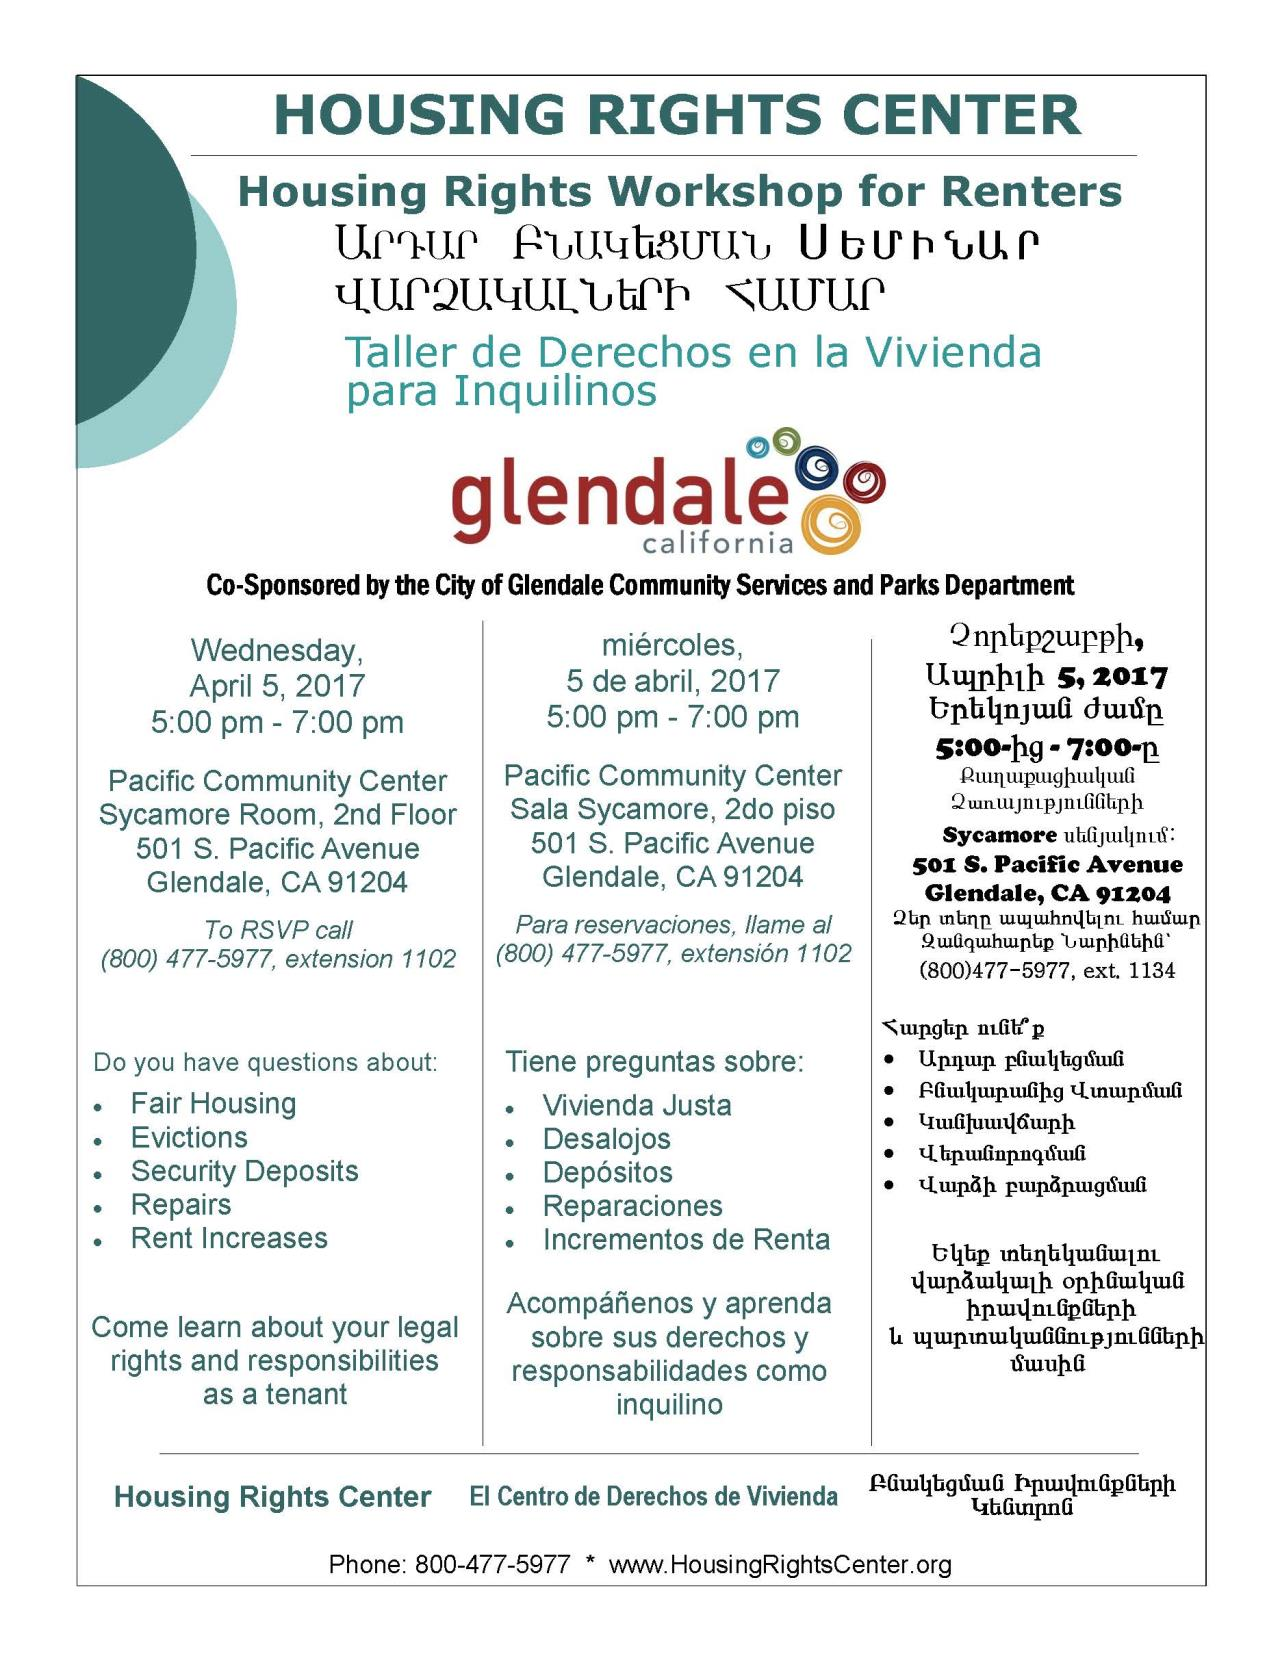 Glendale Housing Rights Flyer 04 05 17